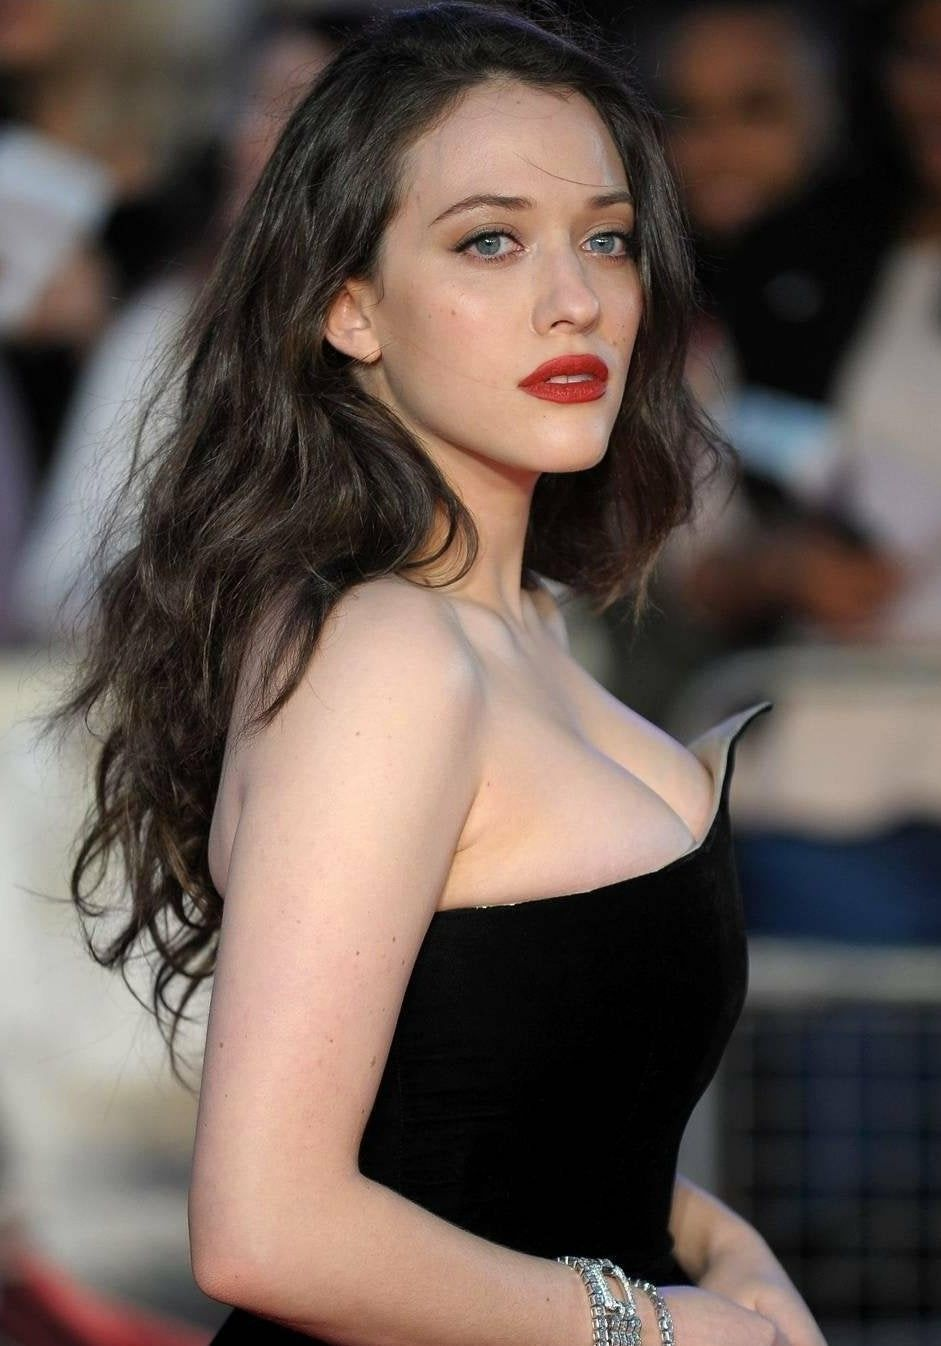 Kat Dennings Age Biography Hot Pictures